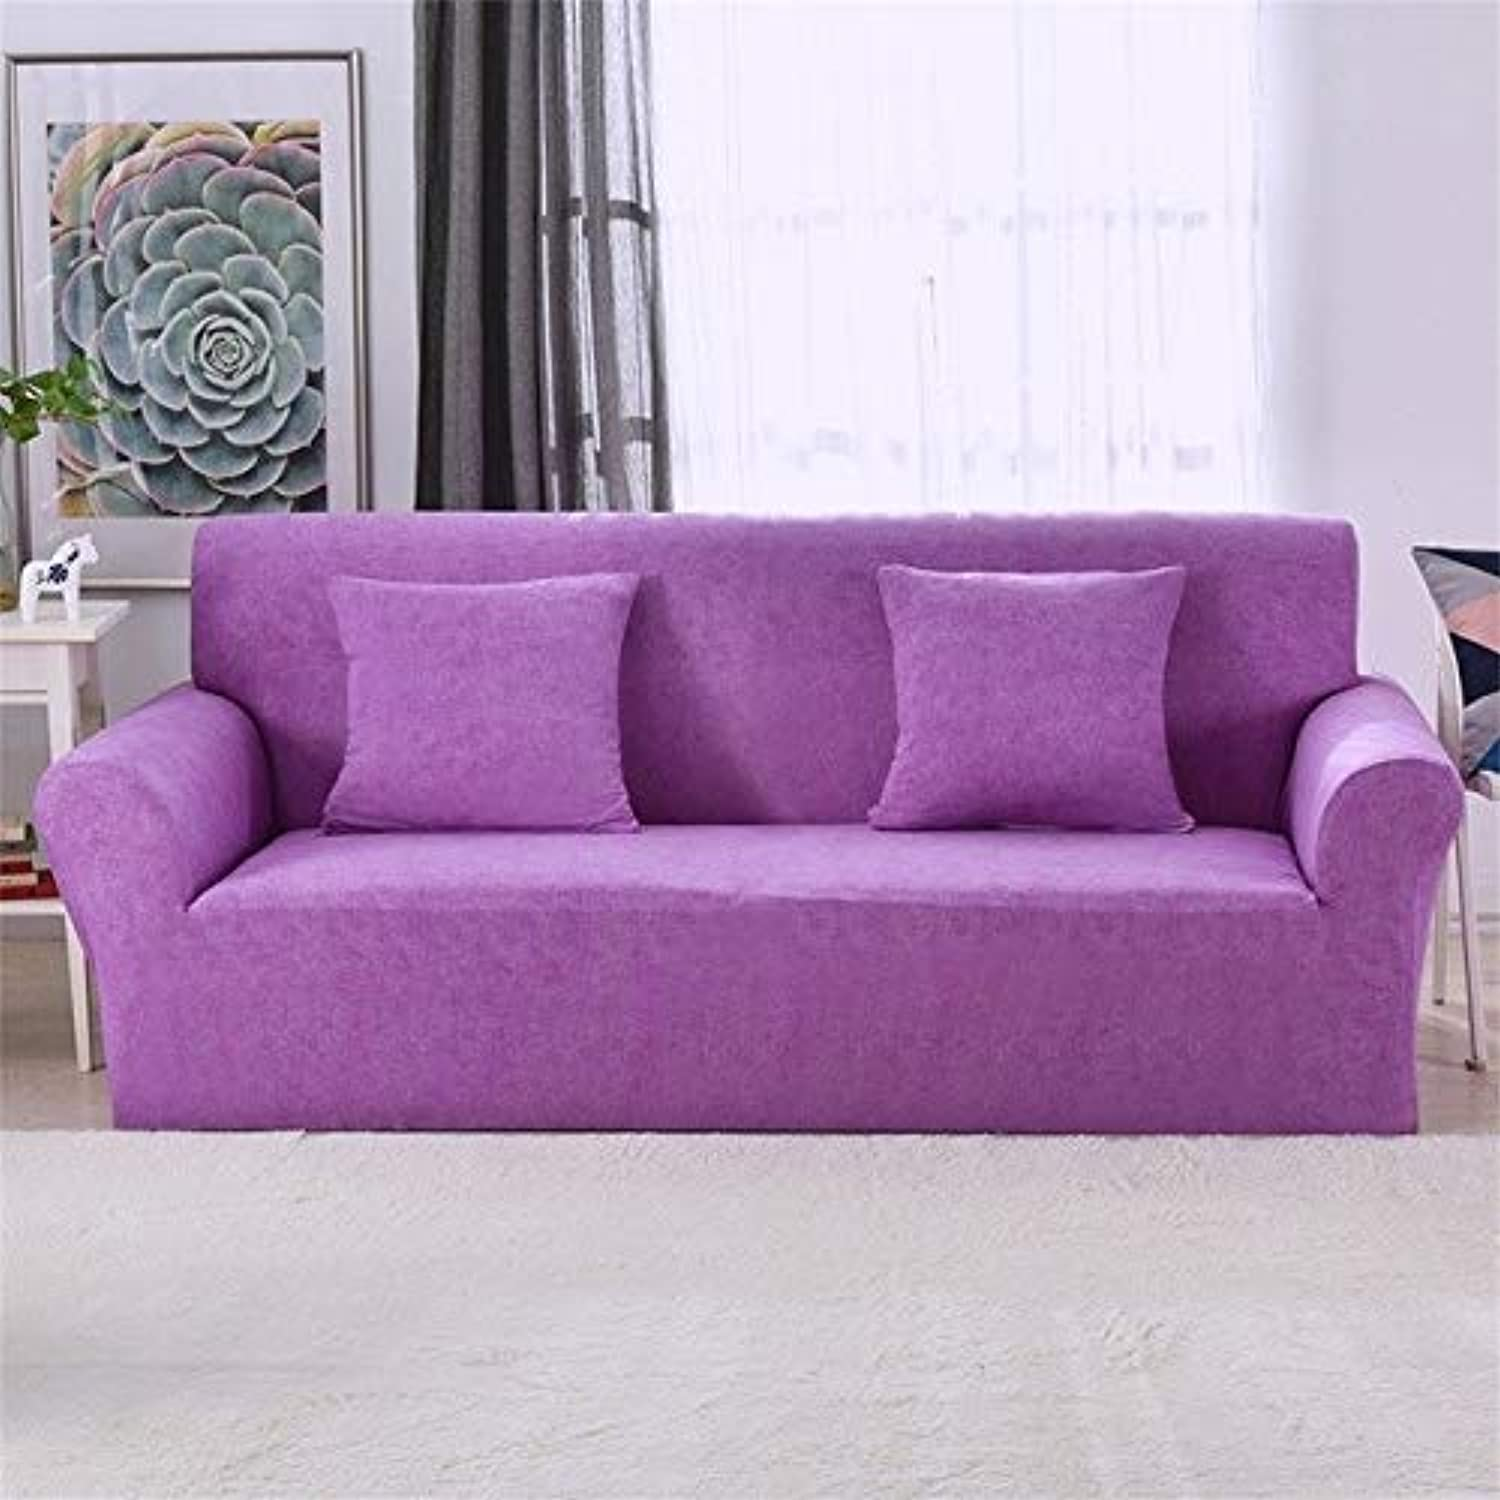 Elastic Stretch Universal Sofa Covers Sectional Throw Couch Corner Cover Cases for Furniture Armchairs Home Decor   Purple, 2 Seater